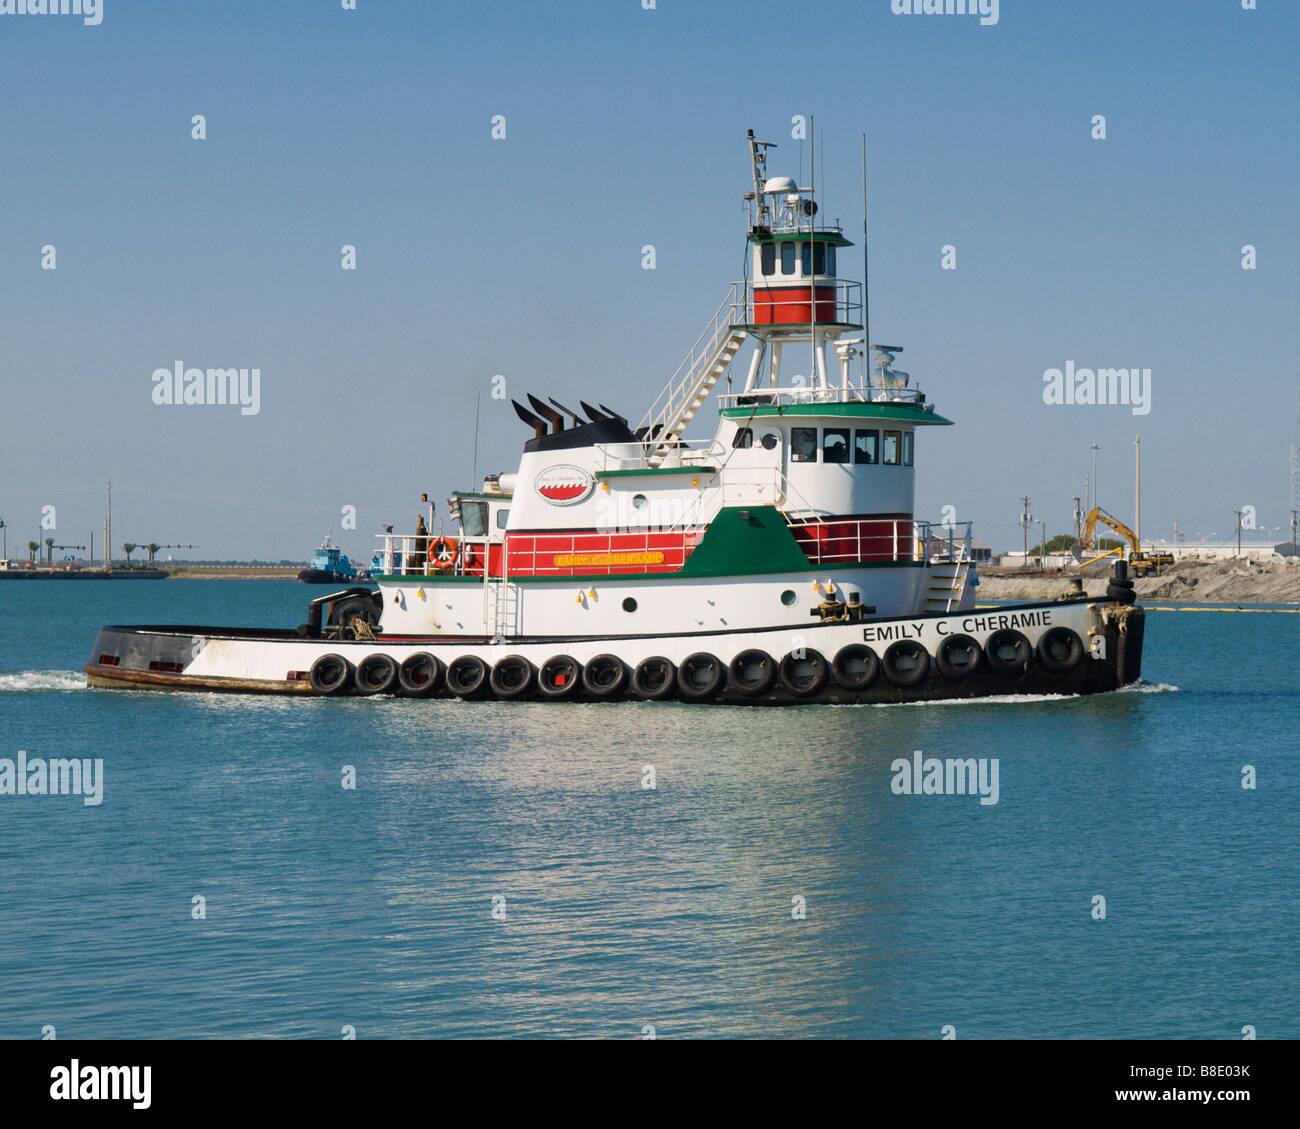 Tugboat Stock Photos & Tugboat Stock Images